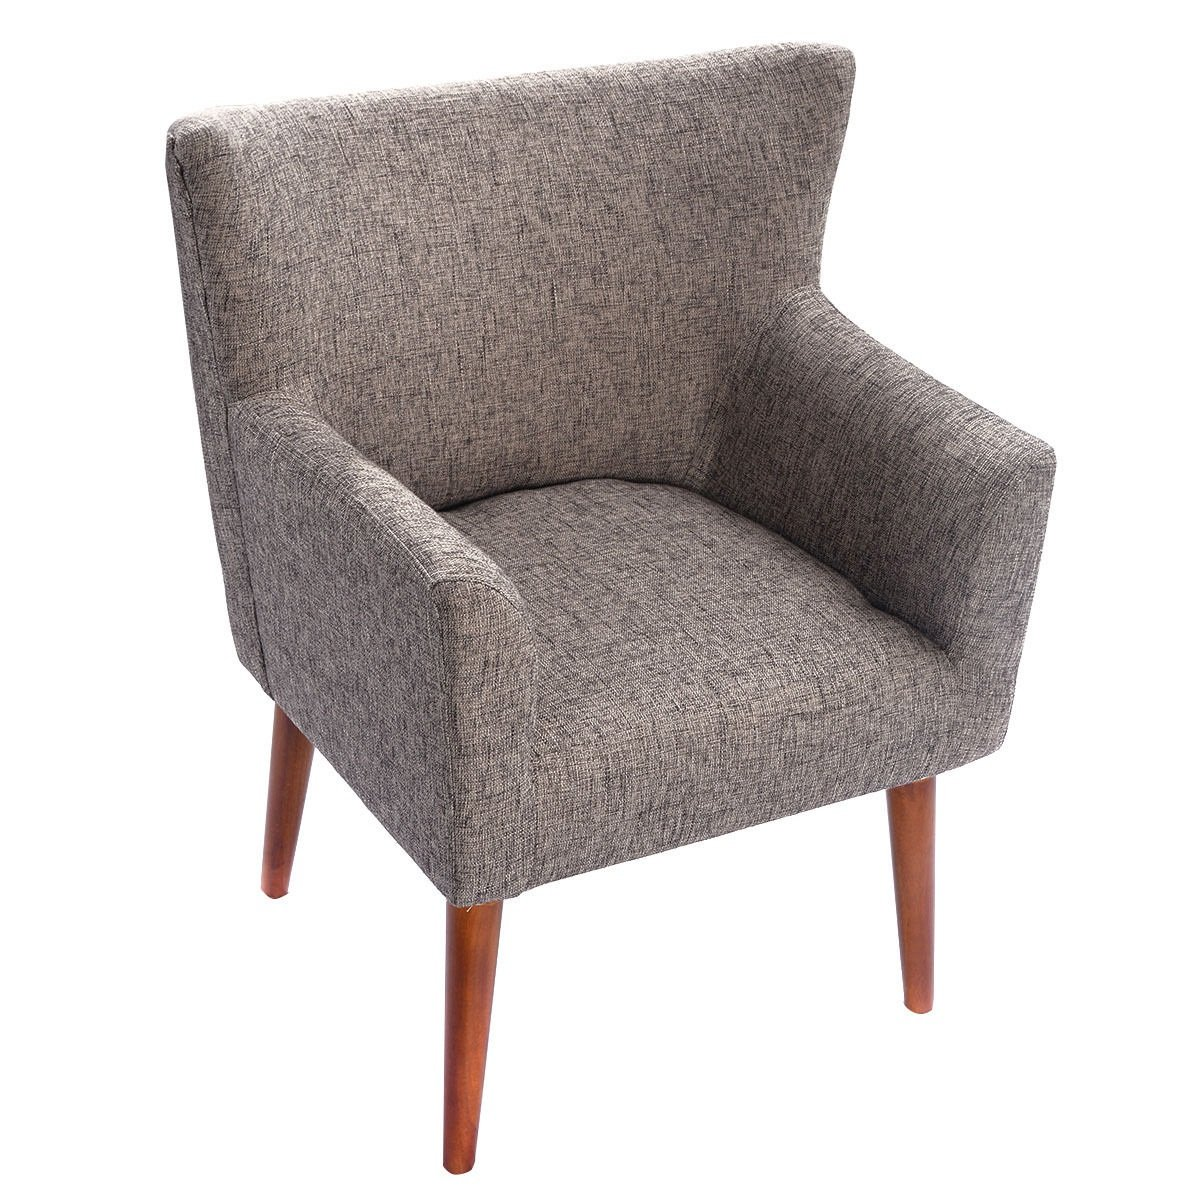 Gray Living Room Chair Leisure Couch Seat for Lounging